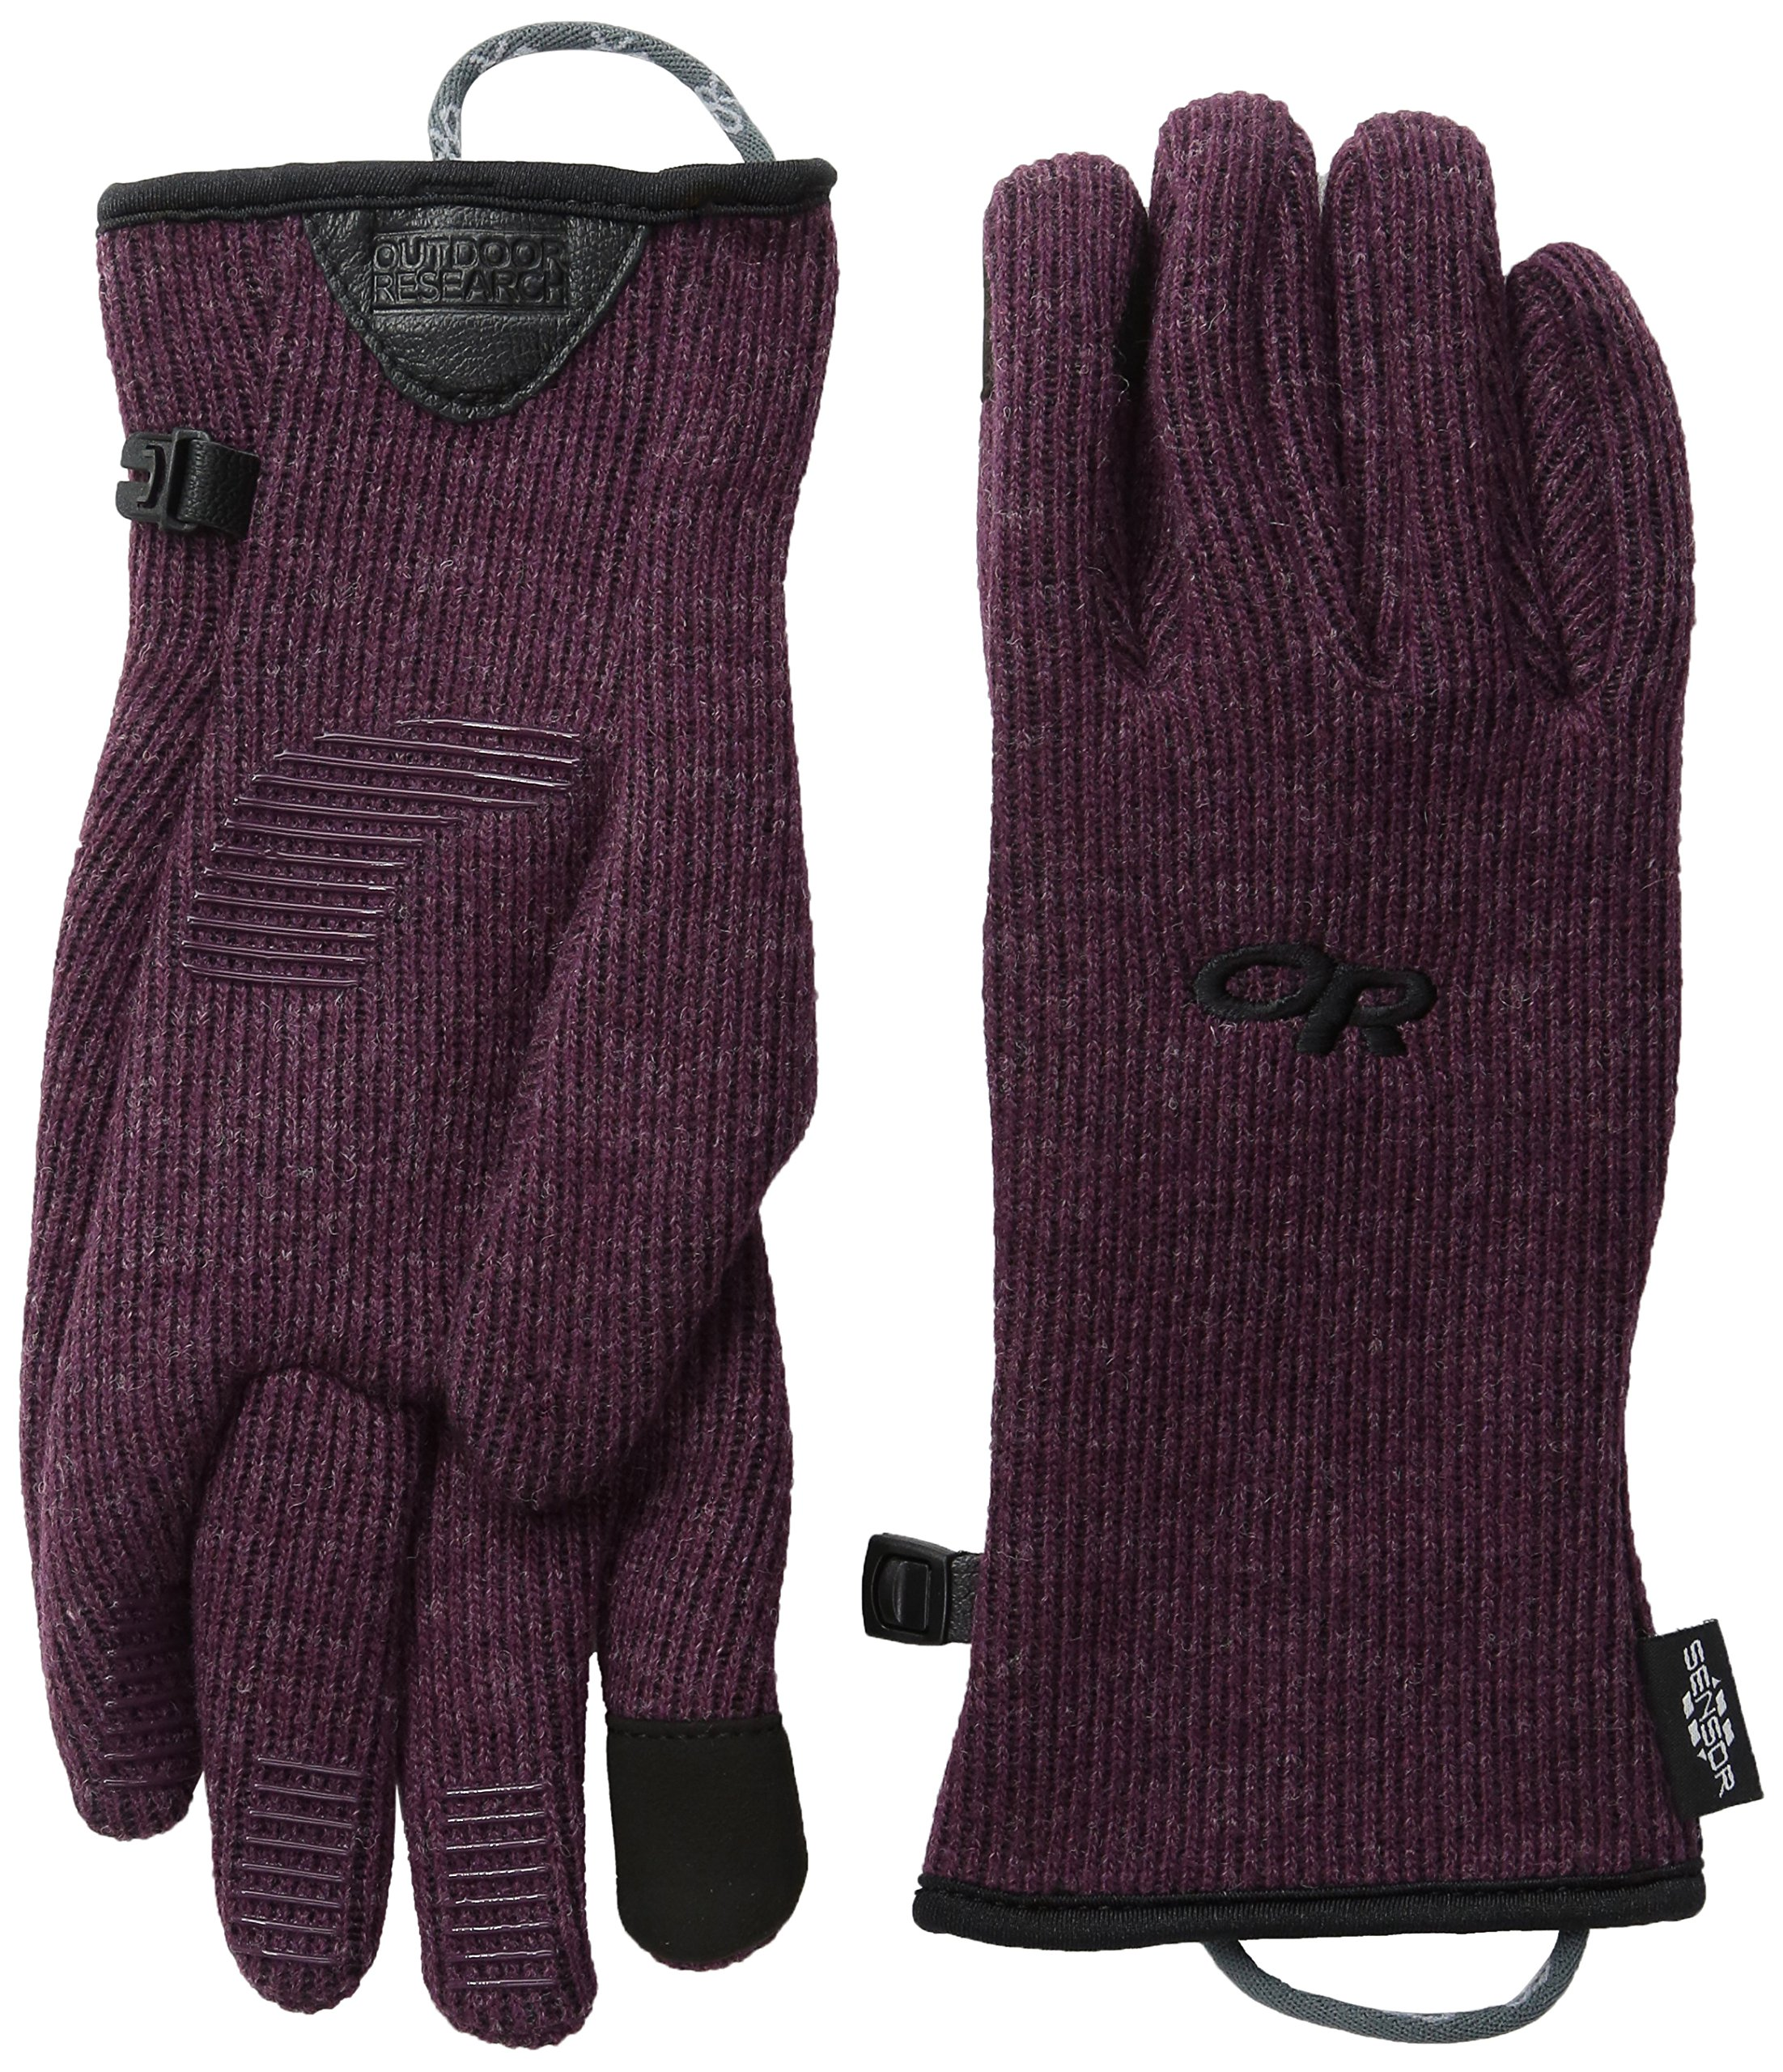 Outdoor Research Women's Flurry Sensor Gloves, Pinot, Medium by Outdoor Research